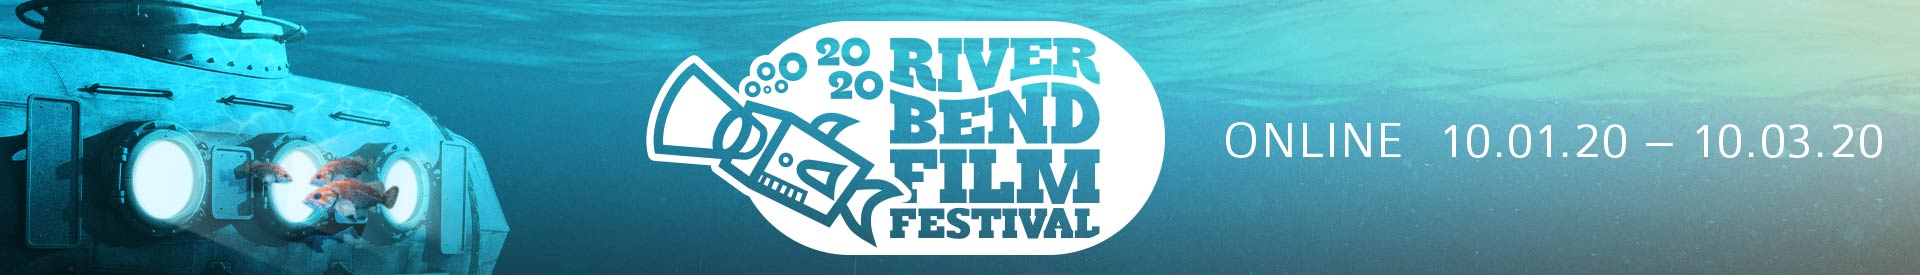 River Bend Film Festival 2020